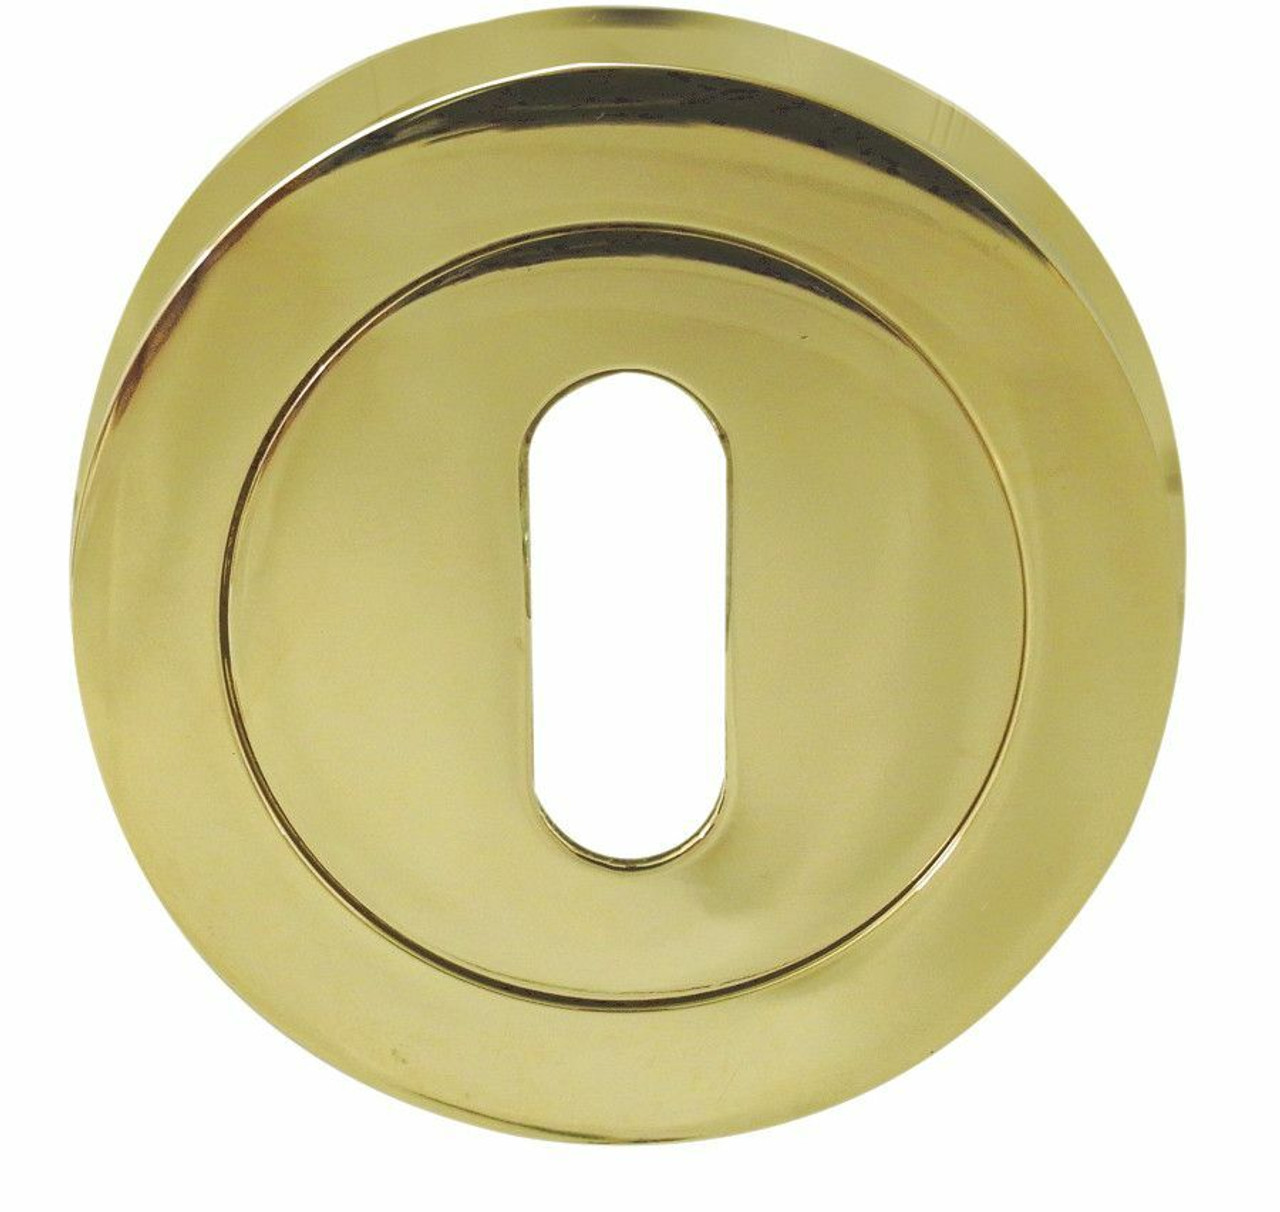 Picture of: Polished Brass Escutcheon Keyhole Cover 50mm Jv503pb